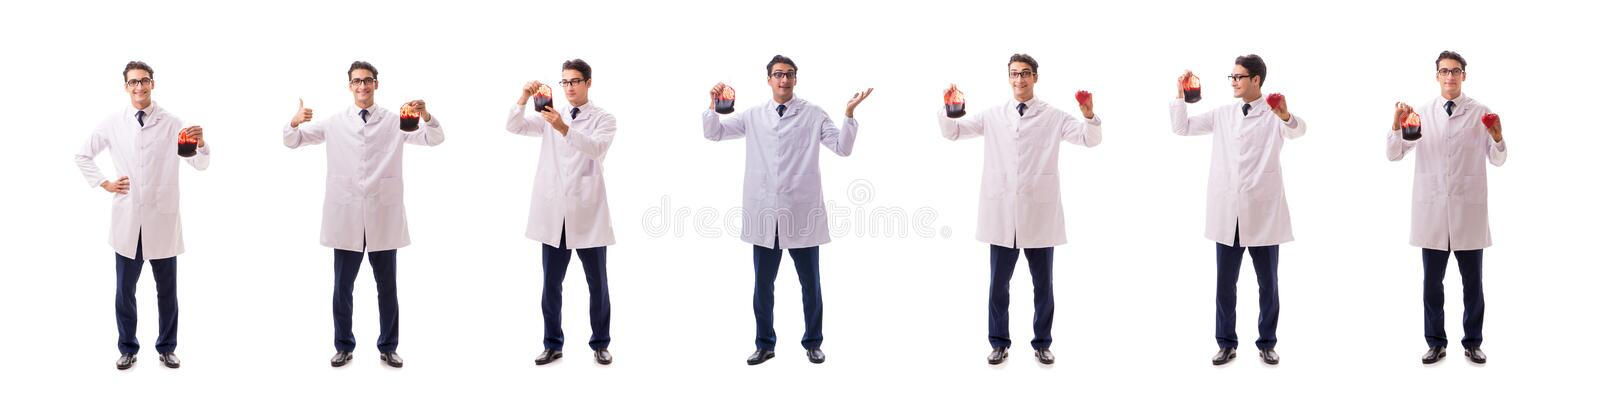 The doctor in blood donation concept isolated on white royalty free stock photography